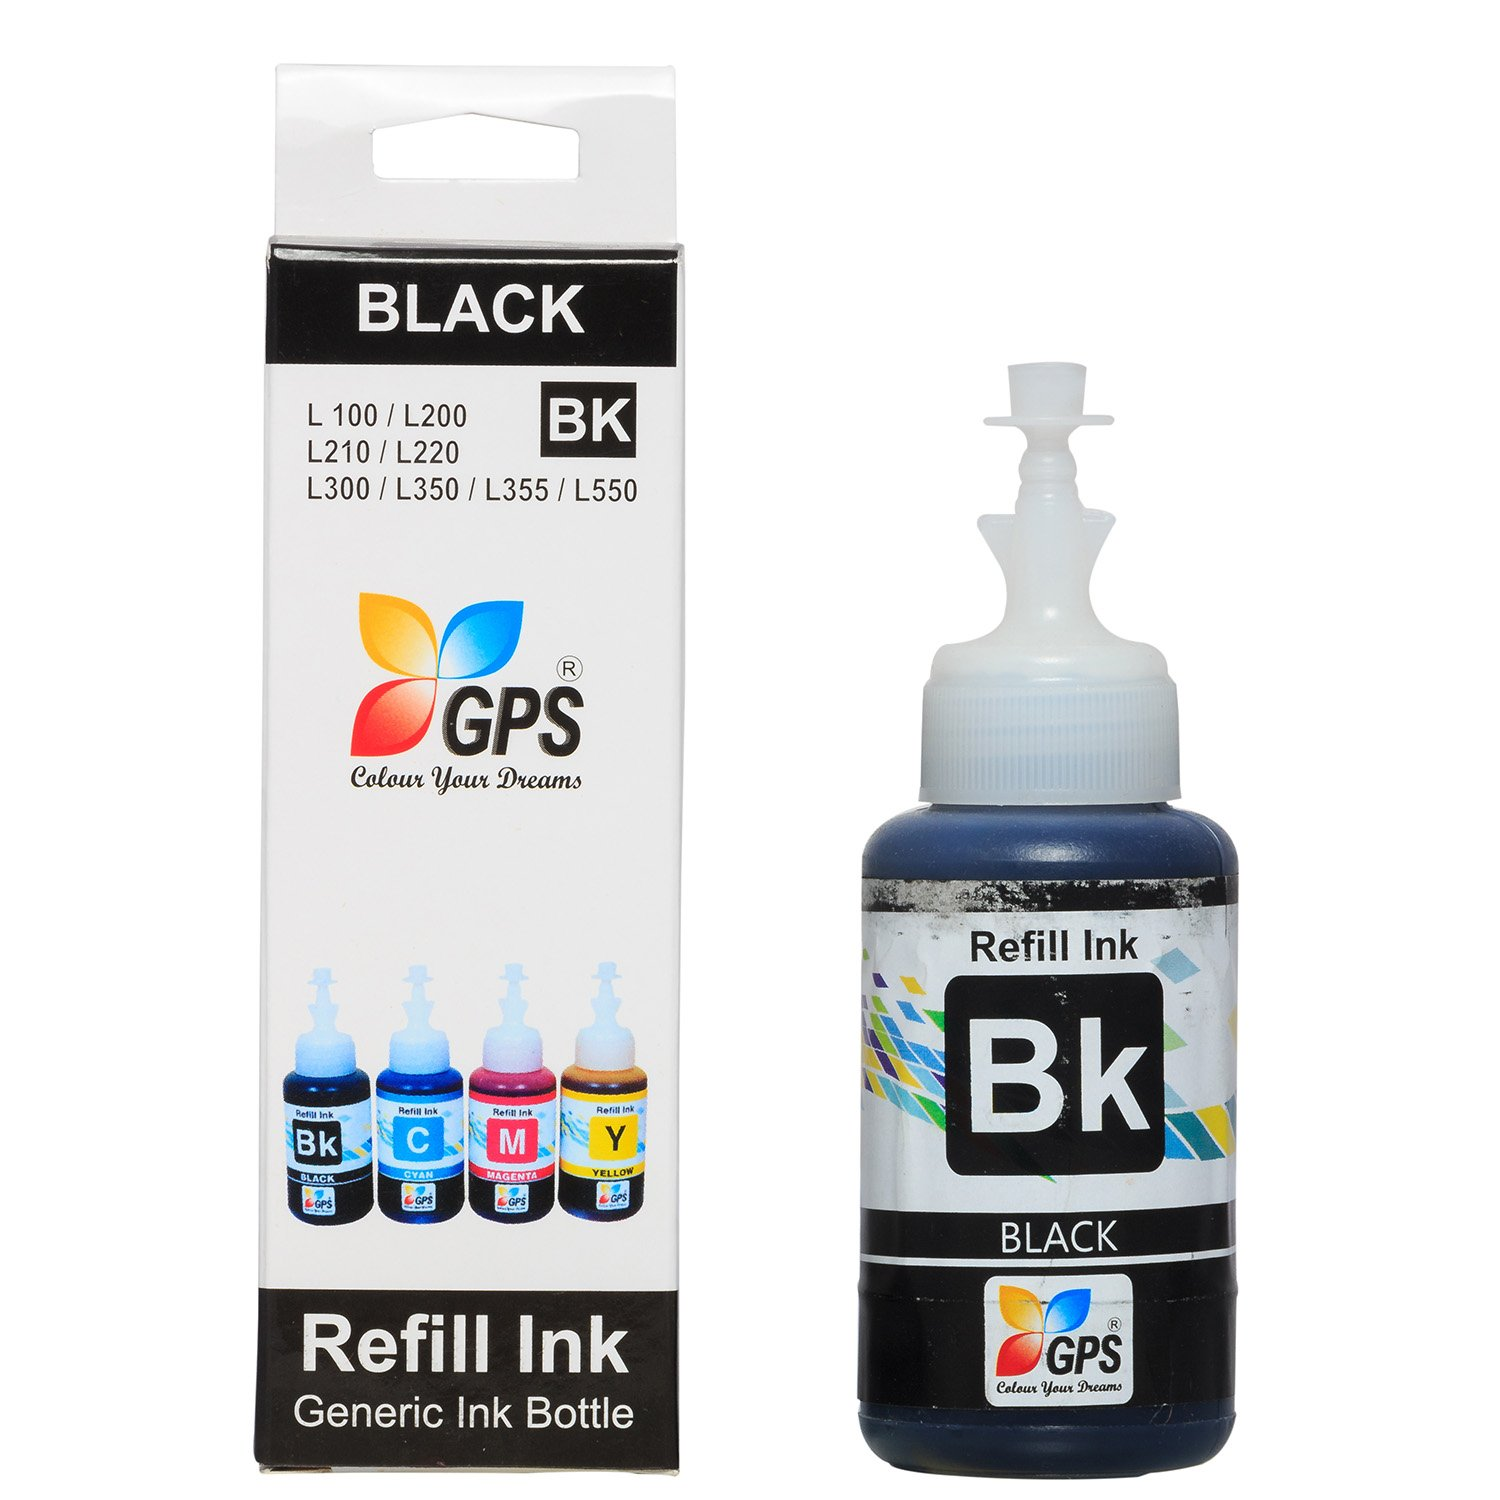 Buy Gps 4 Pack Compatible Epson 75gms Refill Ink Set Print Head L120 L130 L220 L310 L360 L365 L380 L385 L455 L485 L565 New Original T664 For Printer Model L100 L110 L200 L210 L300 L350 L355 L550 L555 Online At Low Prices In India